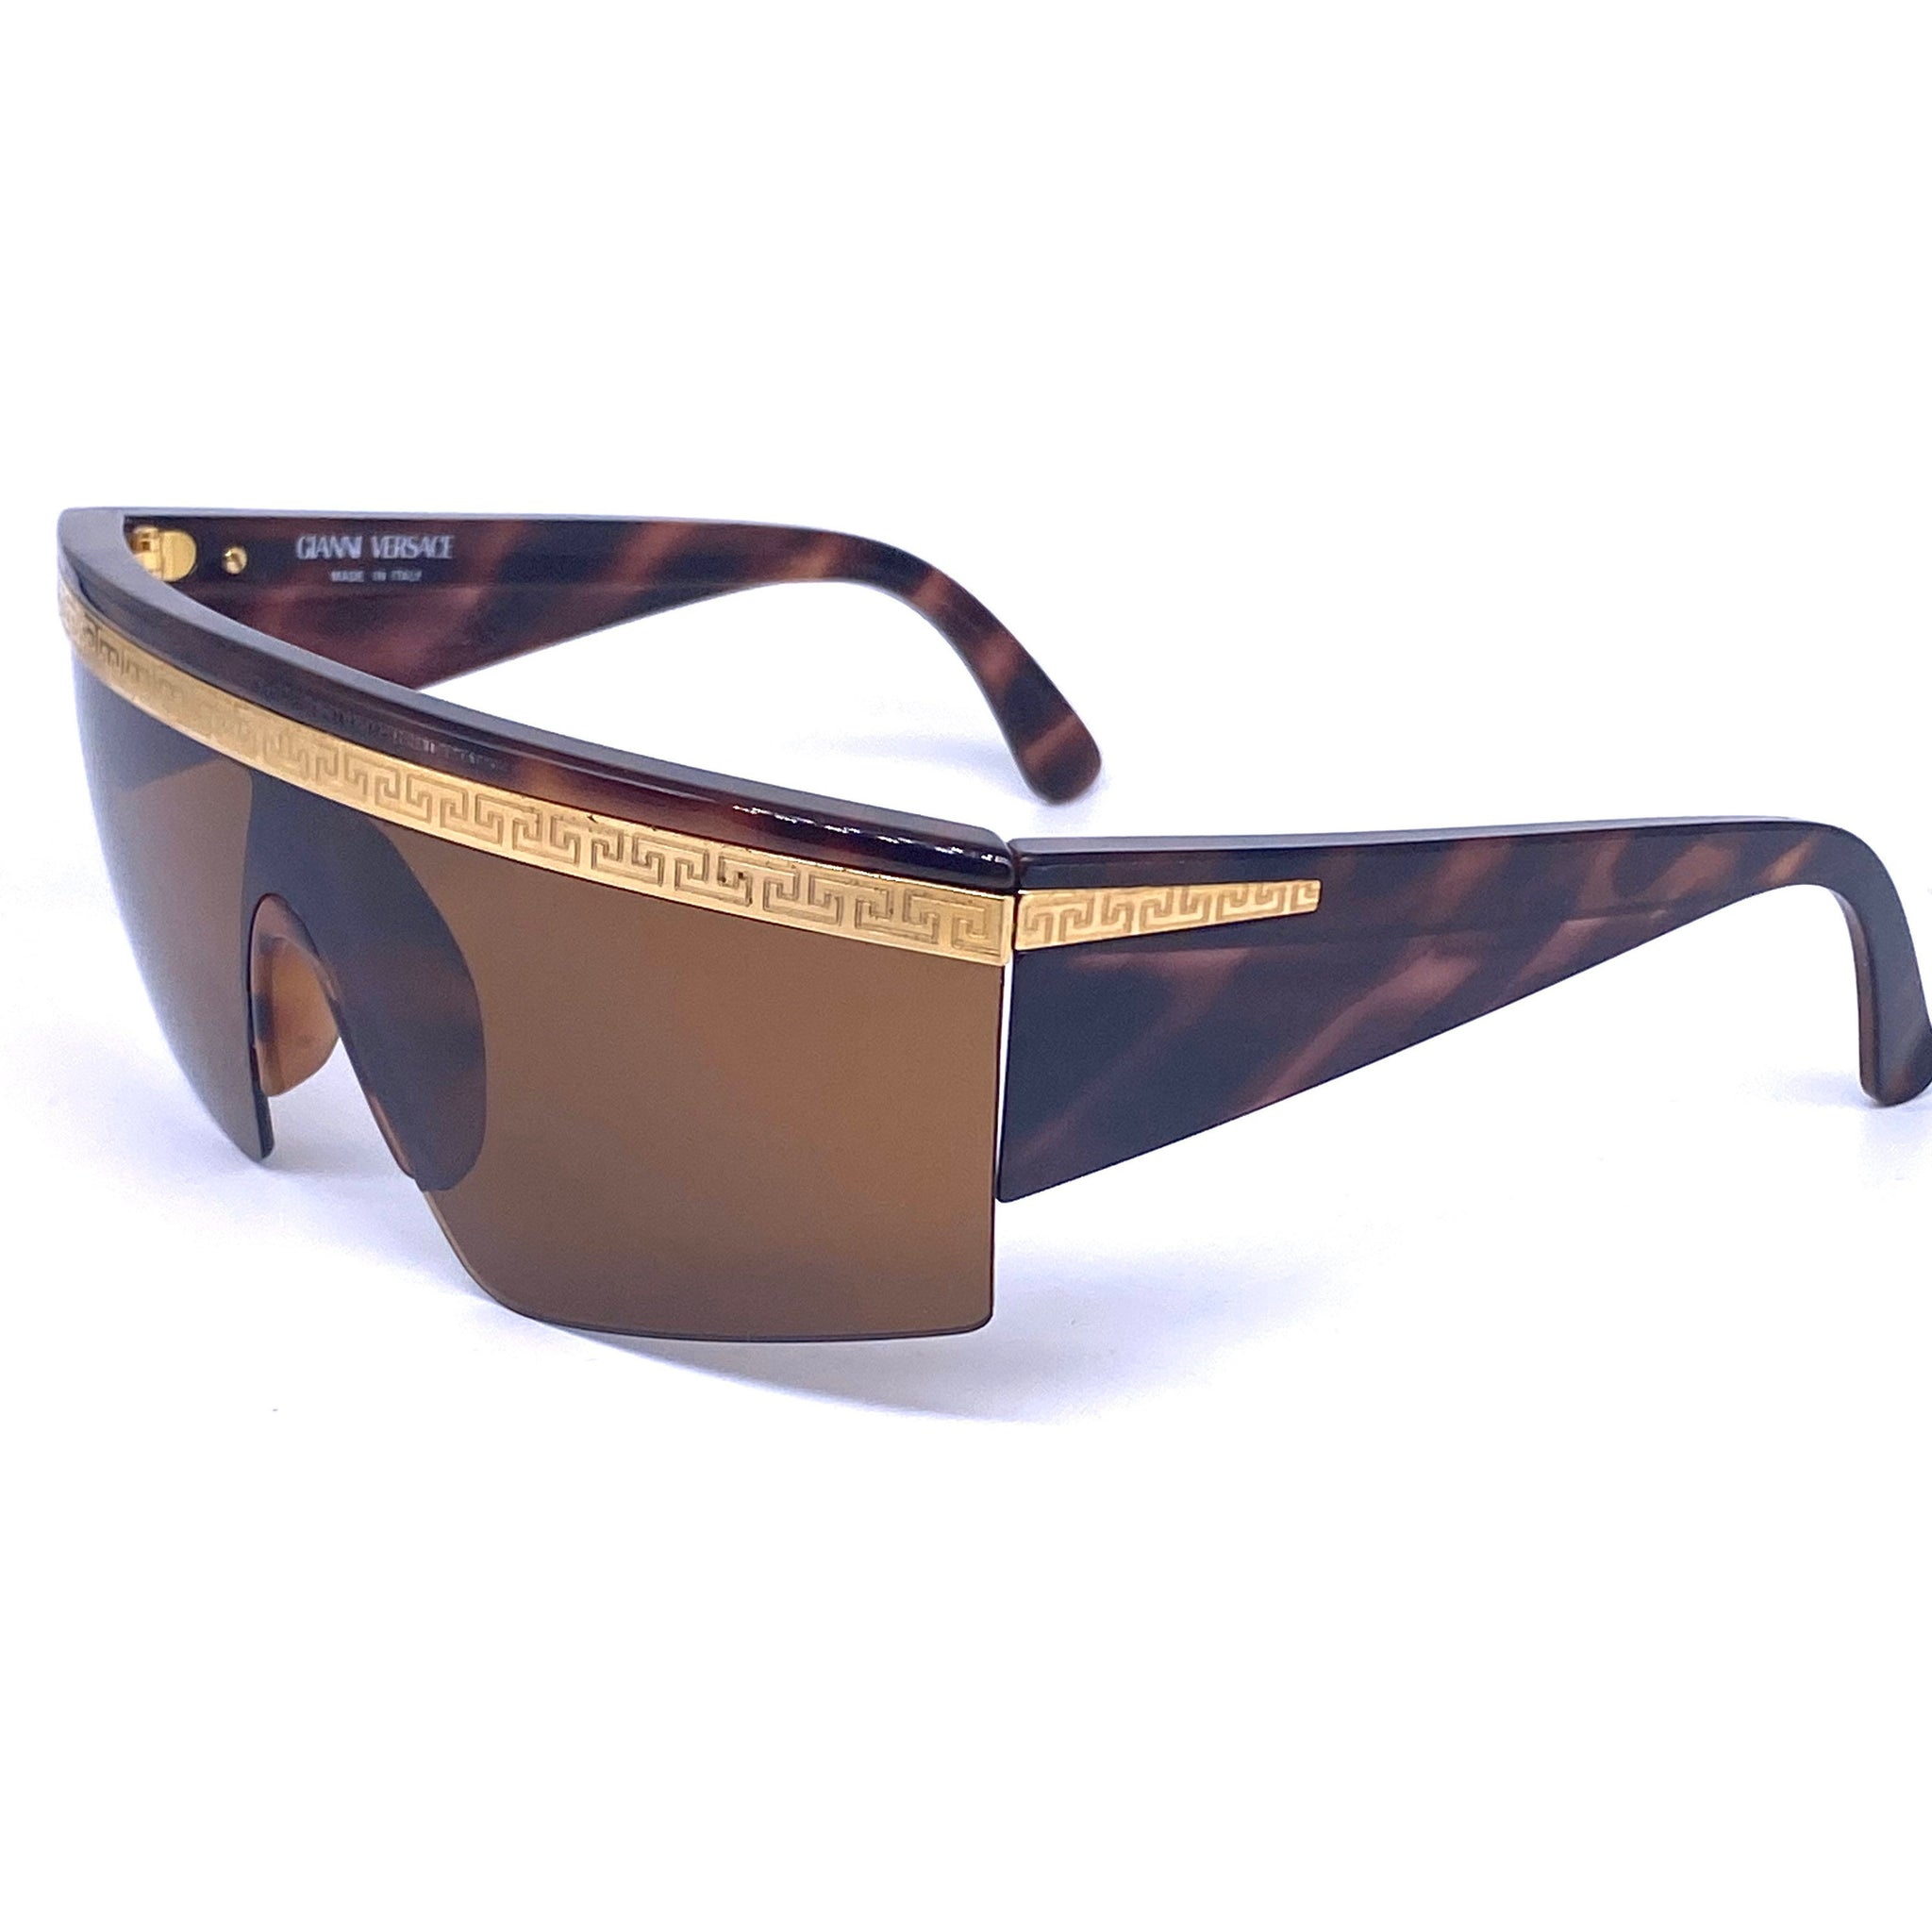 Gianni Versace T76 tortoise wrap sunglasses with golden greek browline, NOs 90s - viceversashop